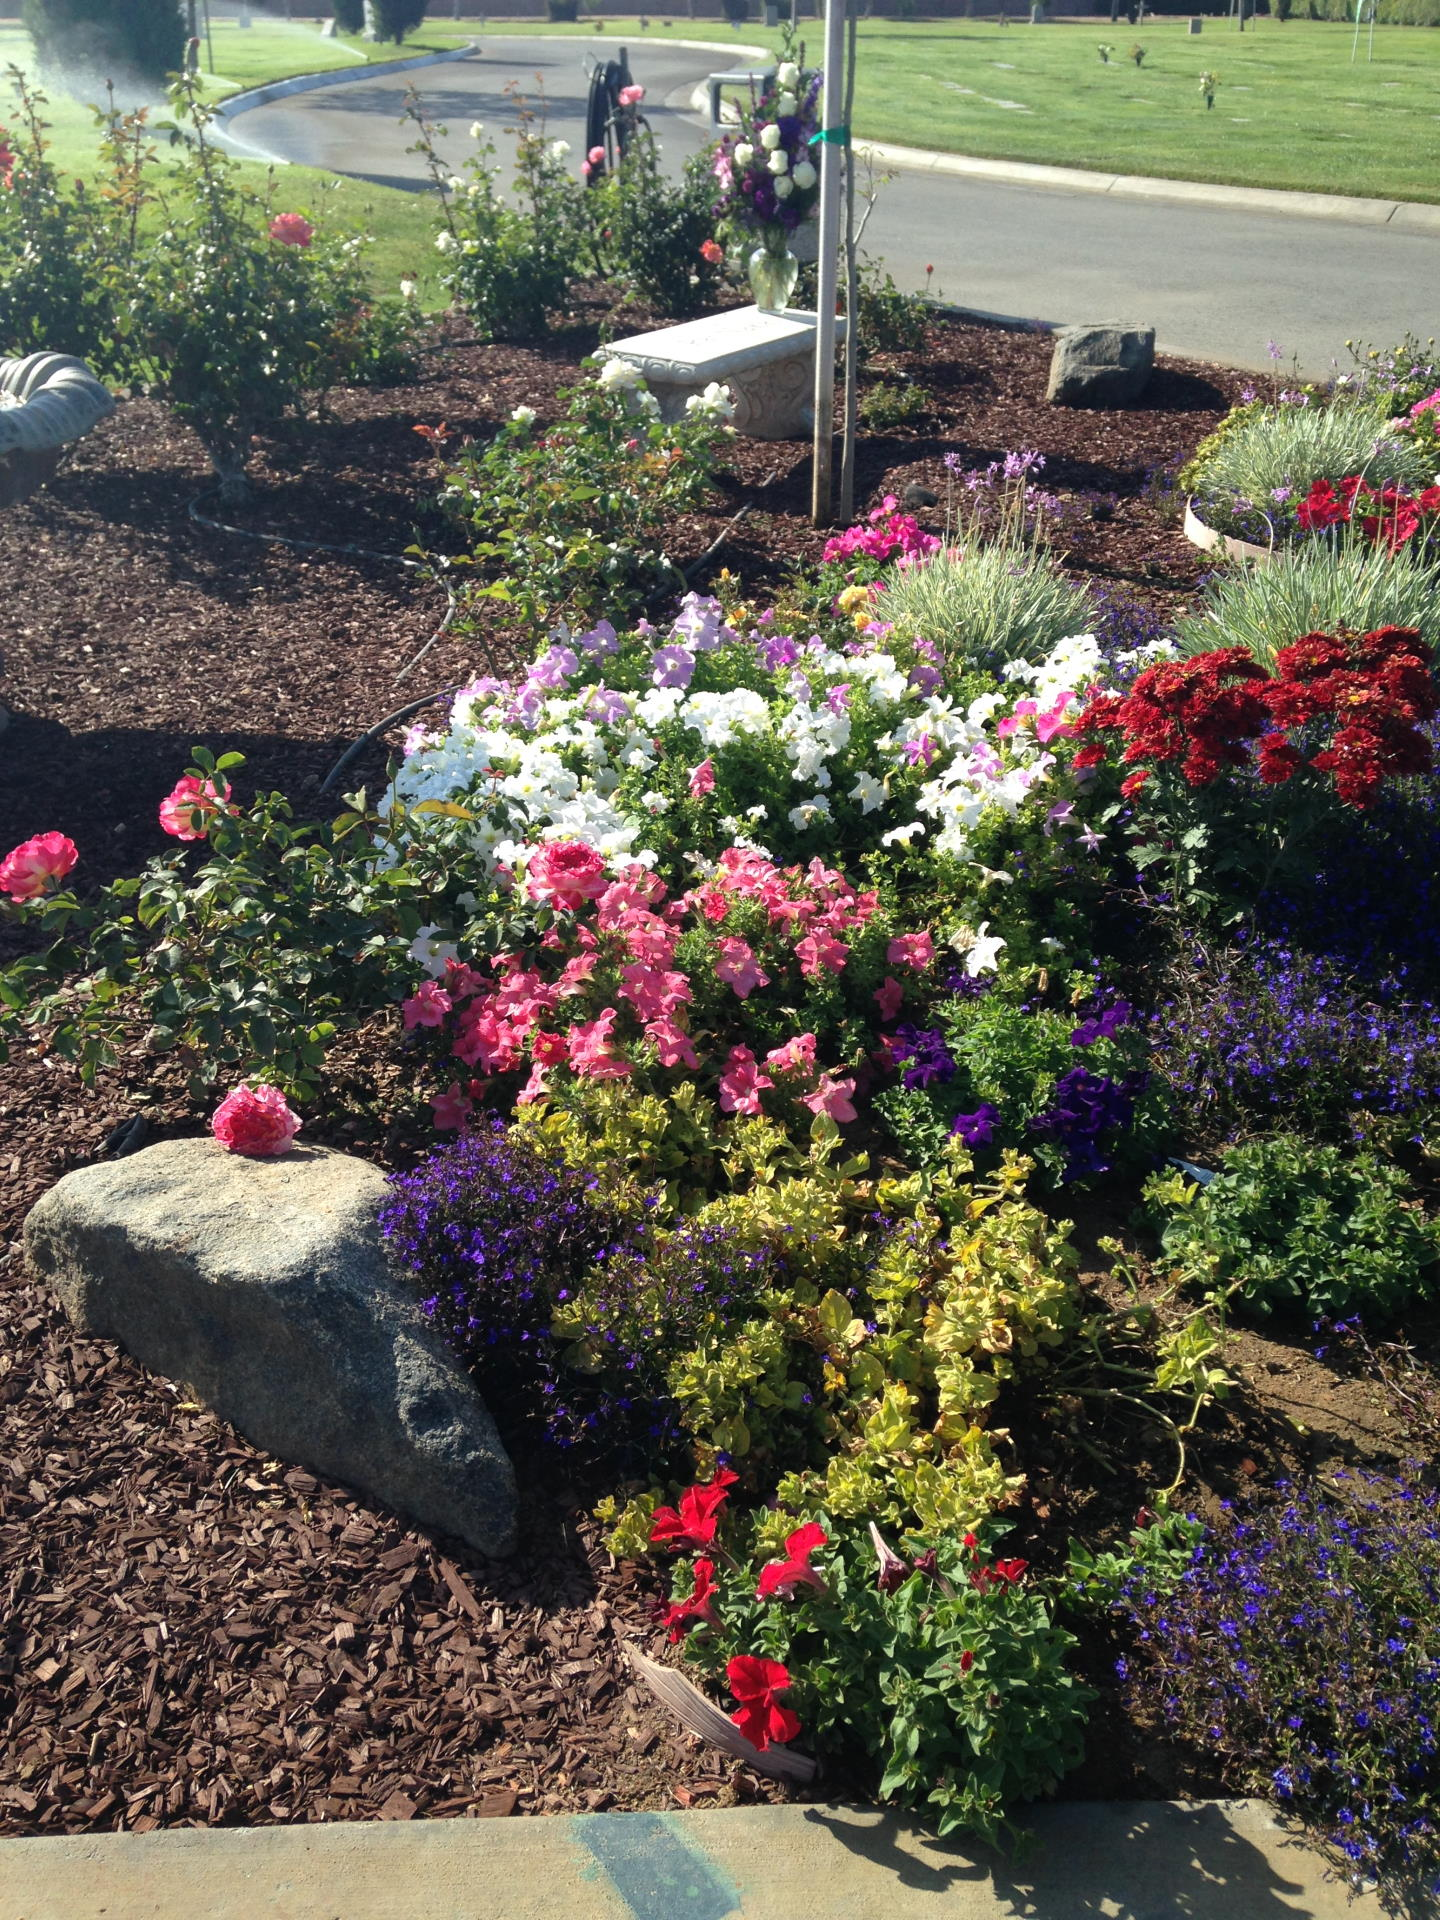 flower bed with blooming plants